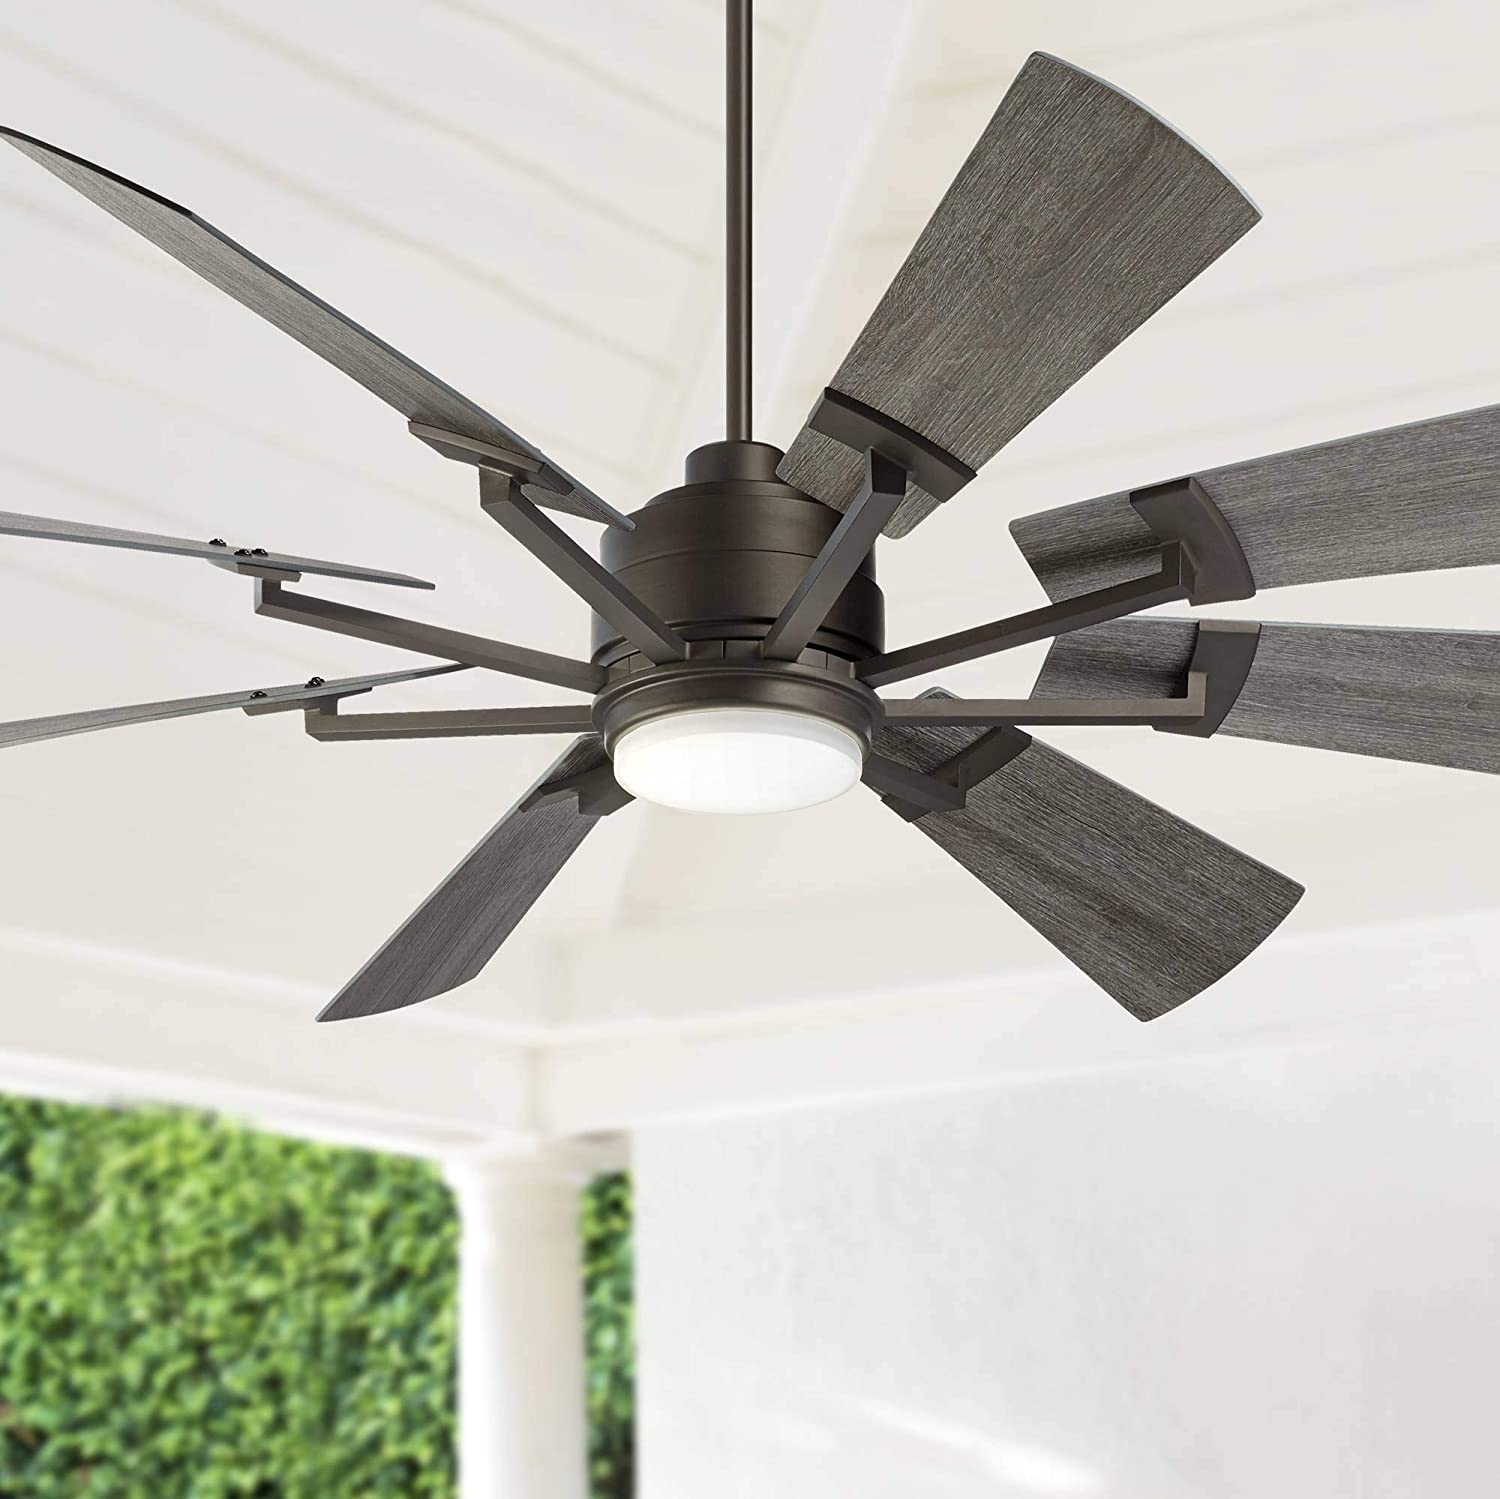 """72"""" Windmill Industrial Rustic Outdoor Ceiling Fan with Light LED Dimmable Remote Control Imperial Bronze Gray Oak Blades Opal Glass Damp Rated for Patio Porch - Casa Vieja"""